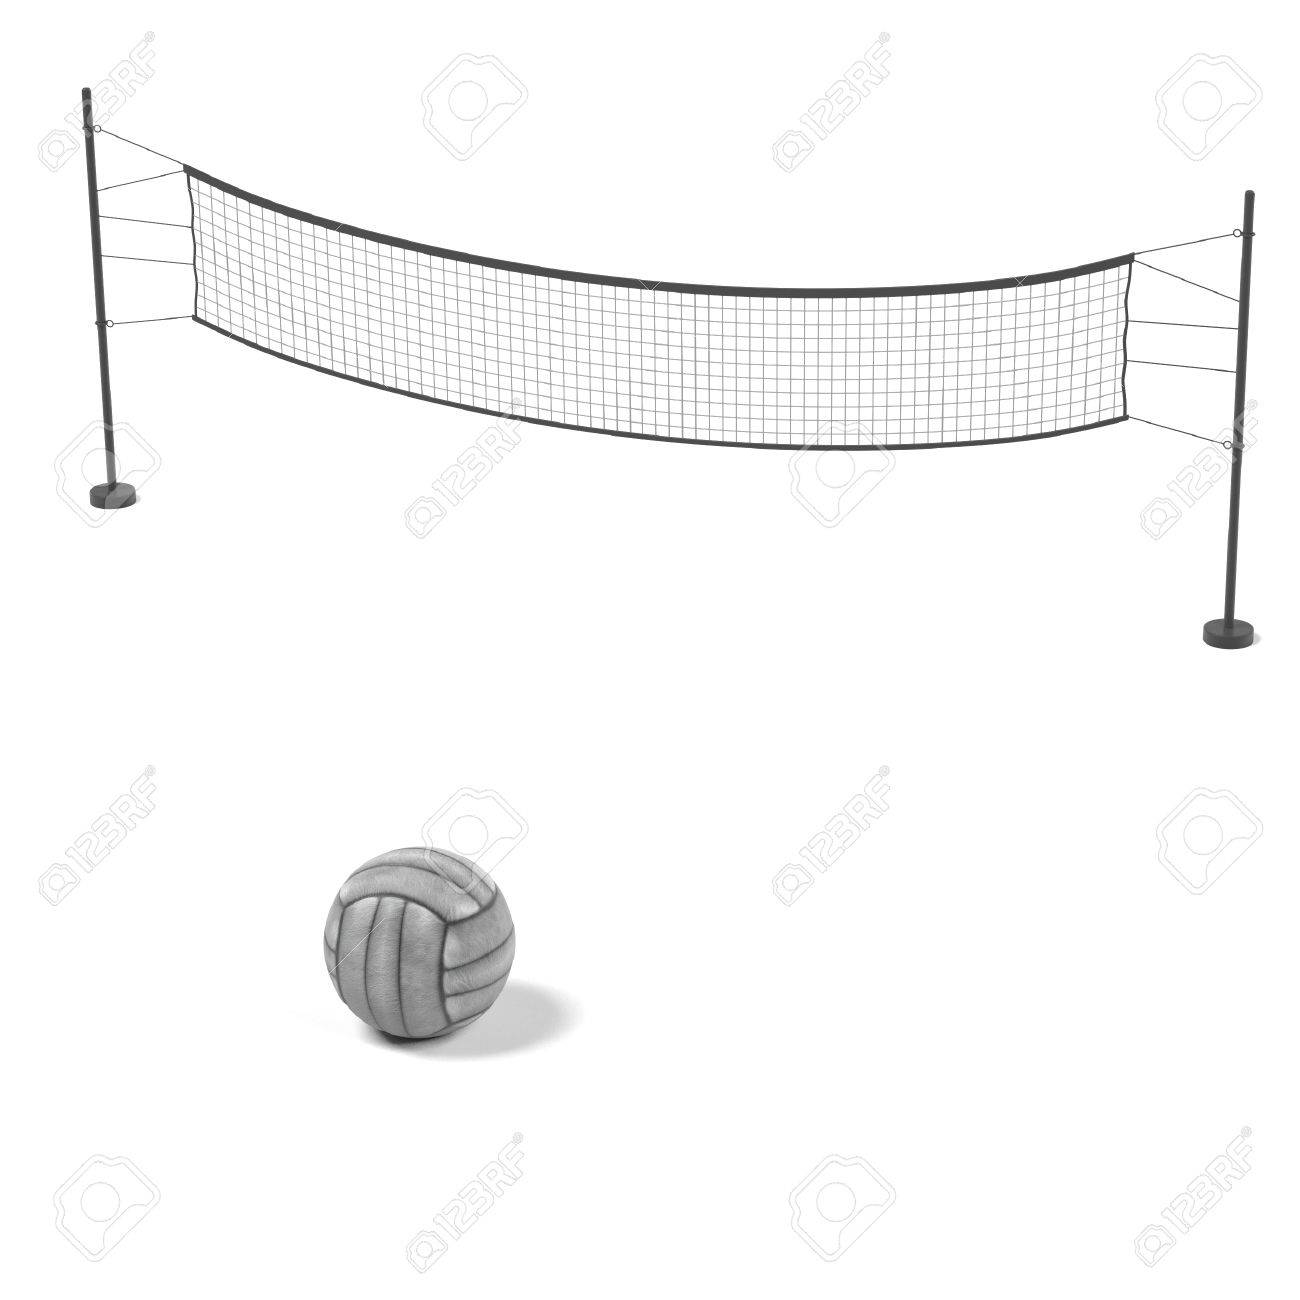 Volleyball Net Drawing